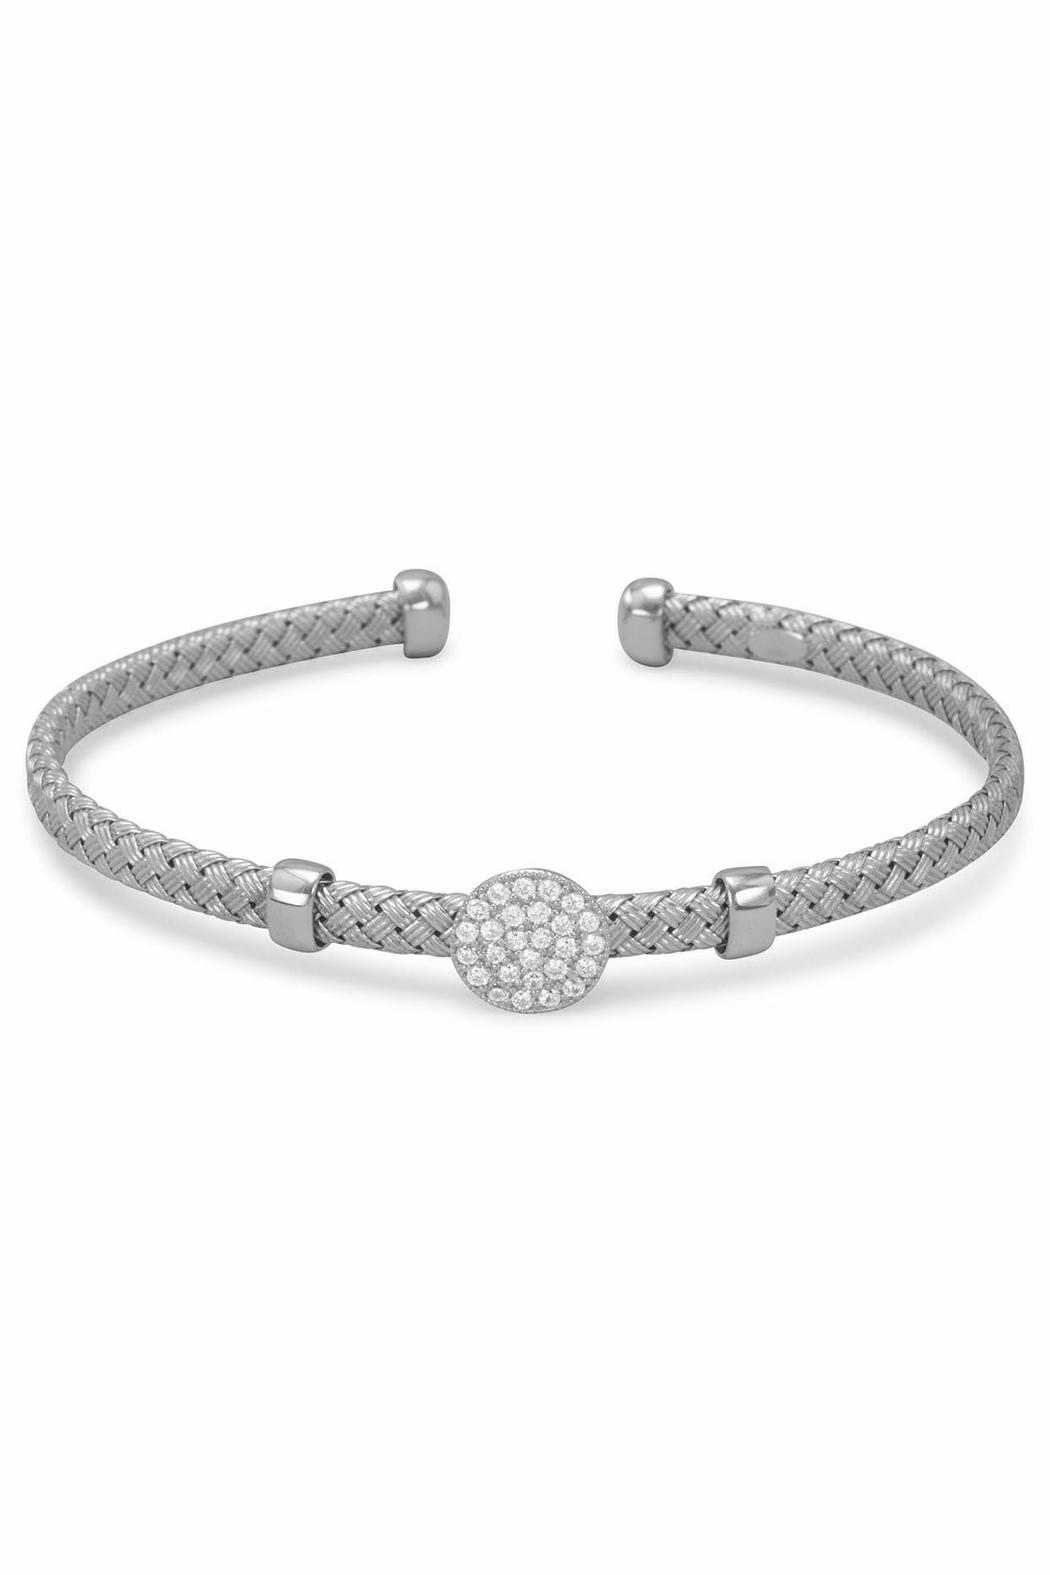 Silver Stars Collection Woven Cuff Bracelet - Main Image